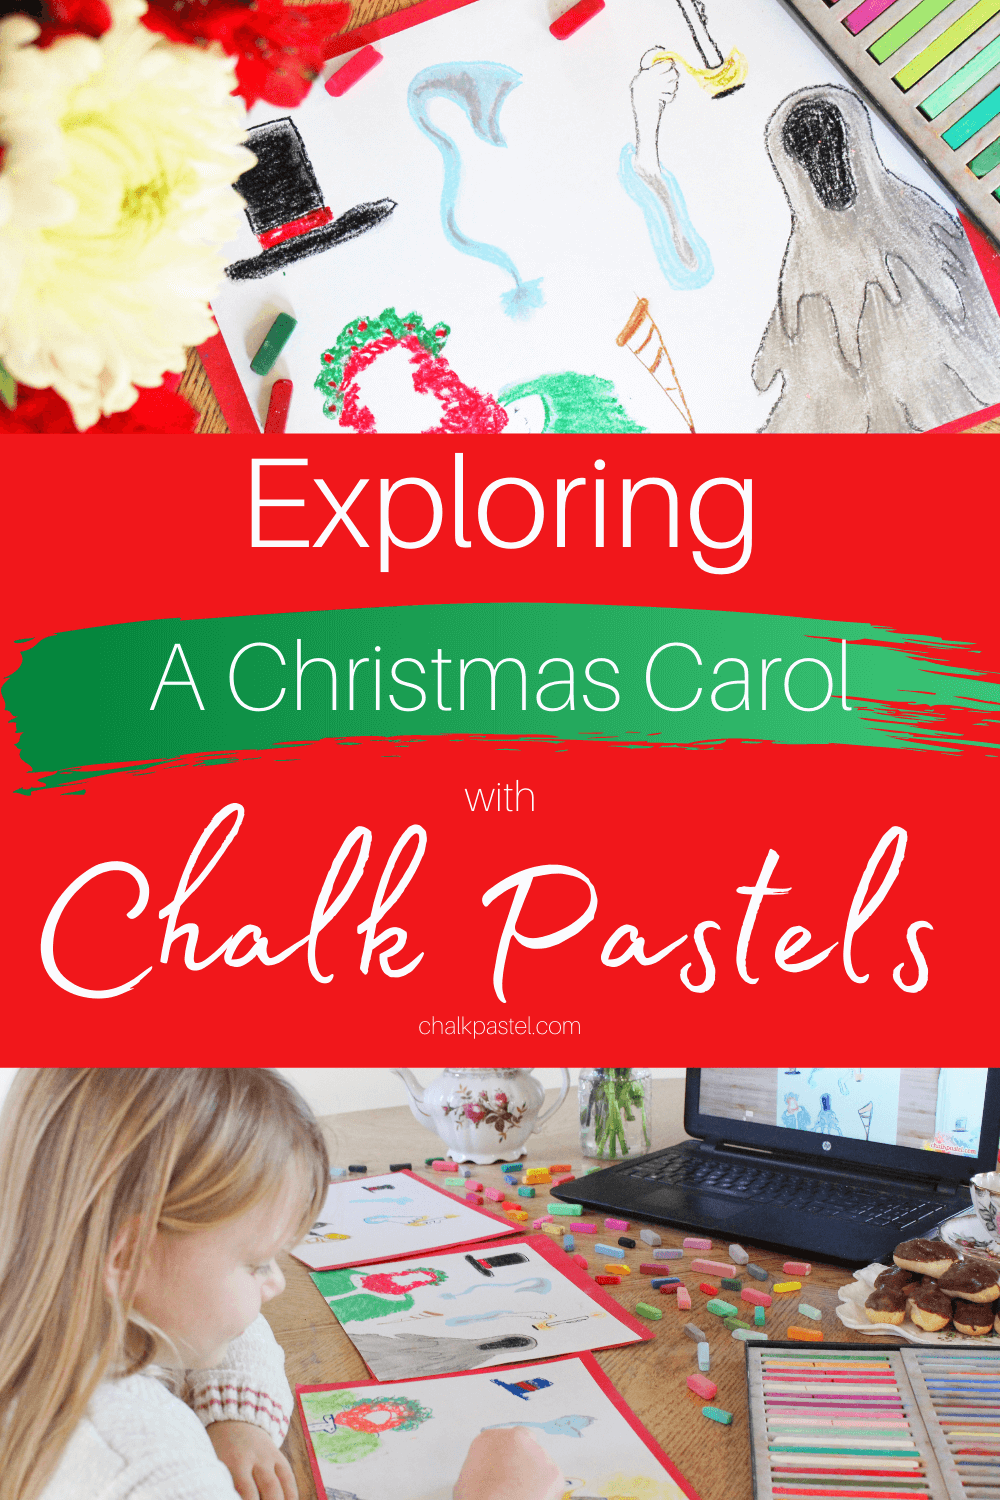 Exploring A Christmas Carol with Chalk Pastels: Exploring A Christmas Carol with chalk pastels is an easy and fun way to combine the rich literature of Charles Dickens, the excitement of cinema, and the glory of art this Christmas season! #AChristmasCarol #CharlesDickens #AChristmasCarolActivities #AChristmasCarolActivitiesforkids #Chalkpastels #ExploringAChristmasCarolwithChalkPastels